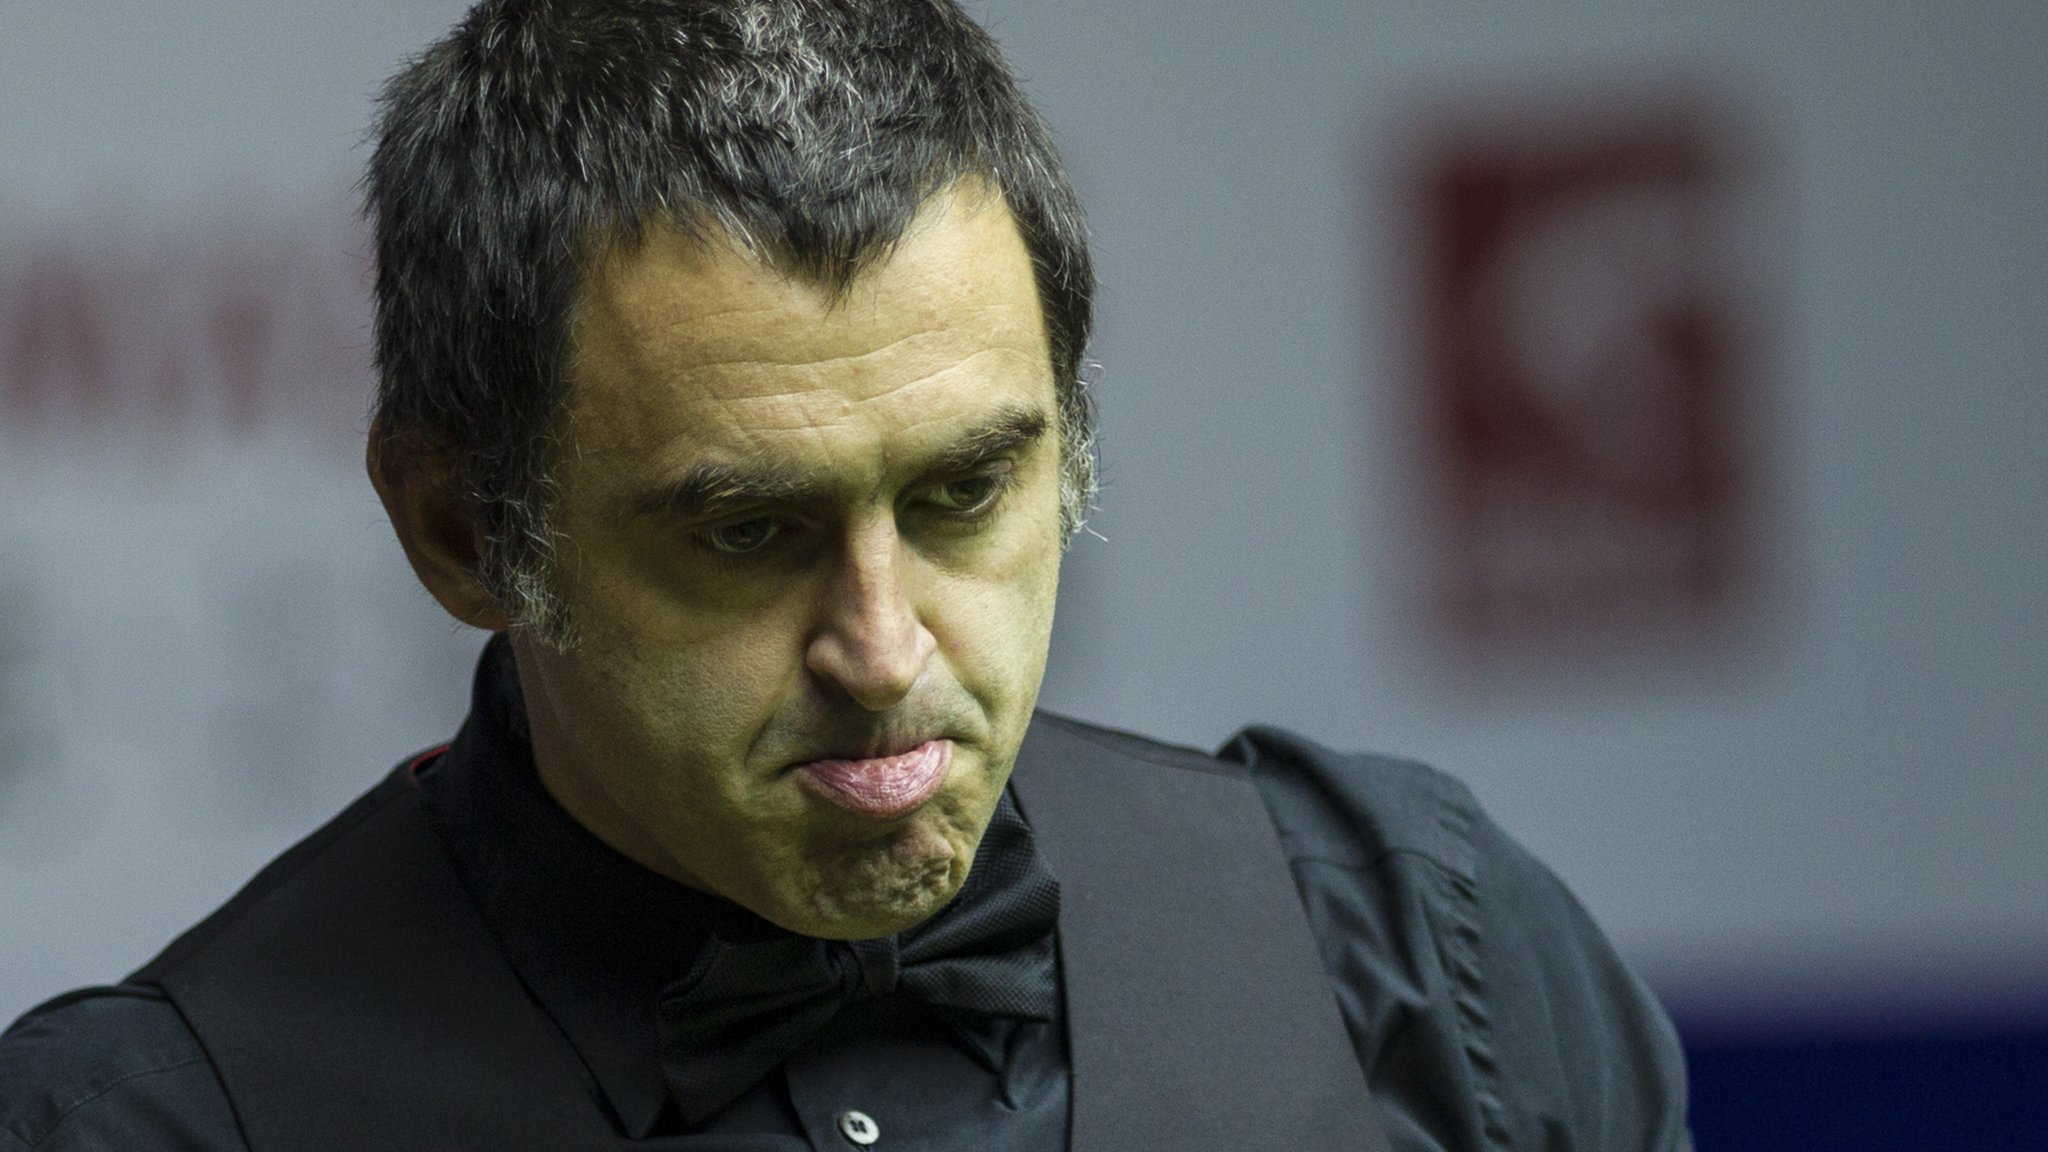 'Hellhole' English Open venue smells of urine, says O'Sullivan